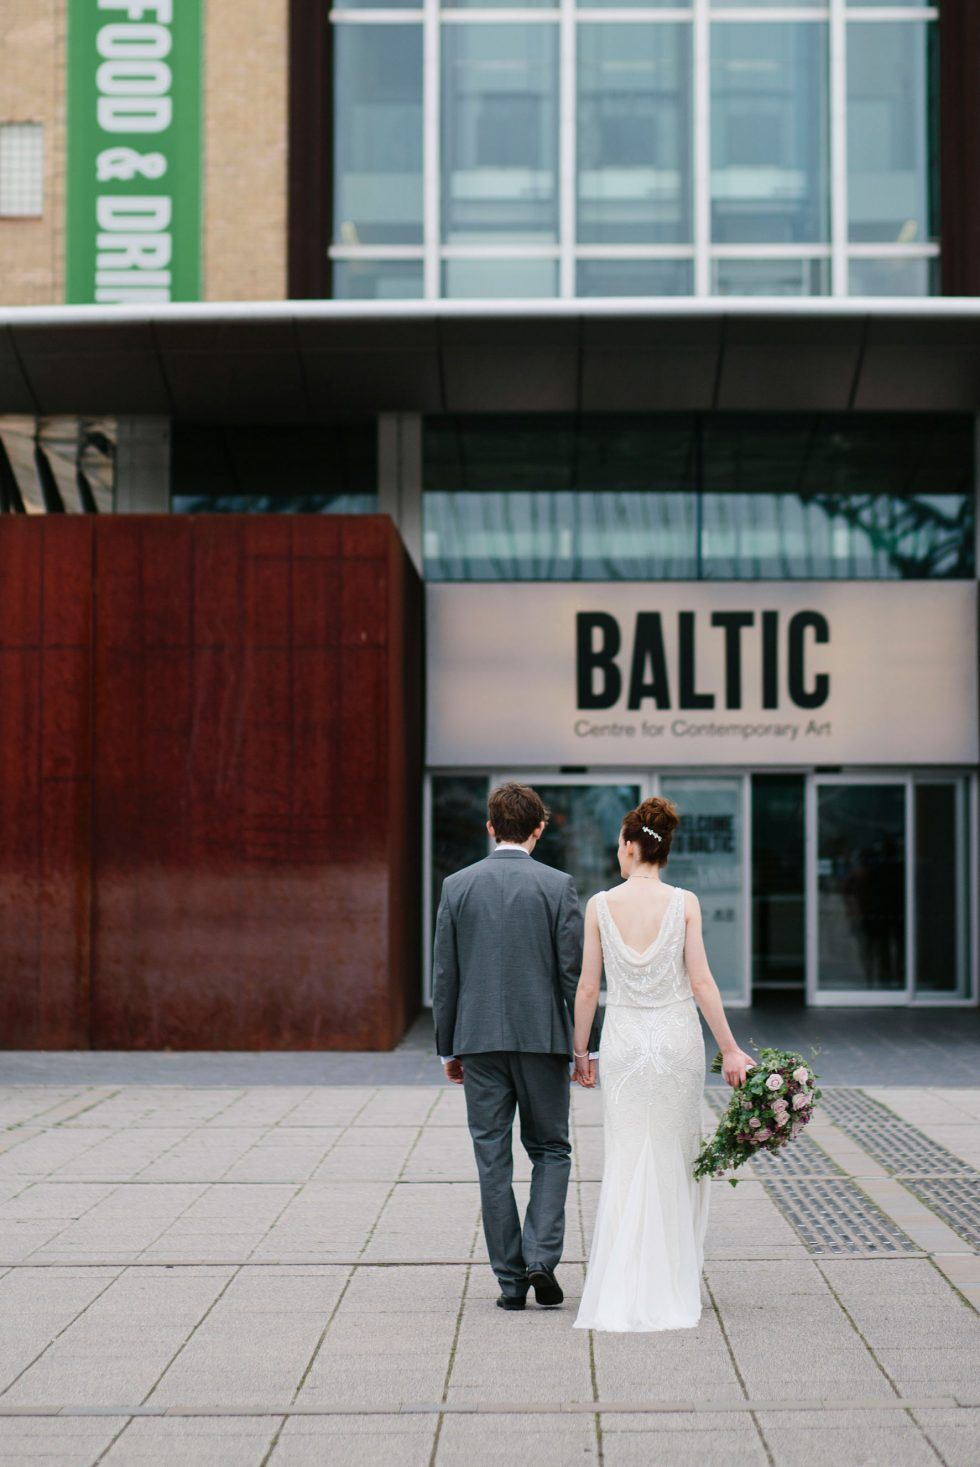 The-Baltic-(7)